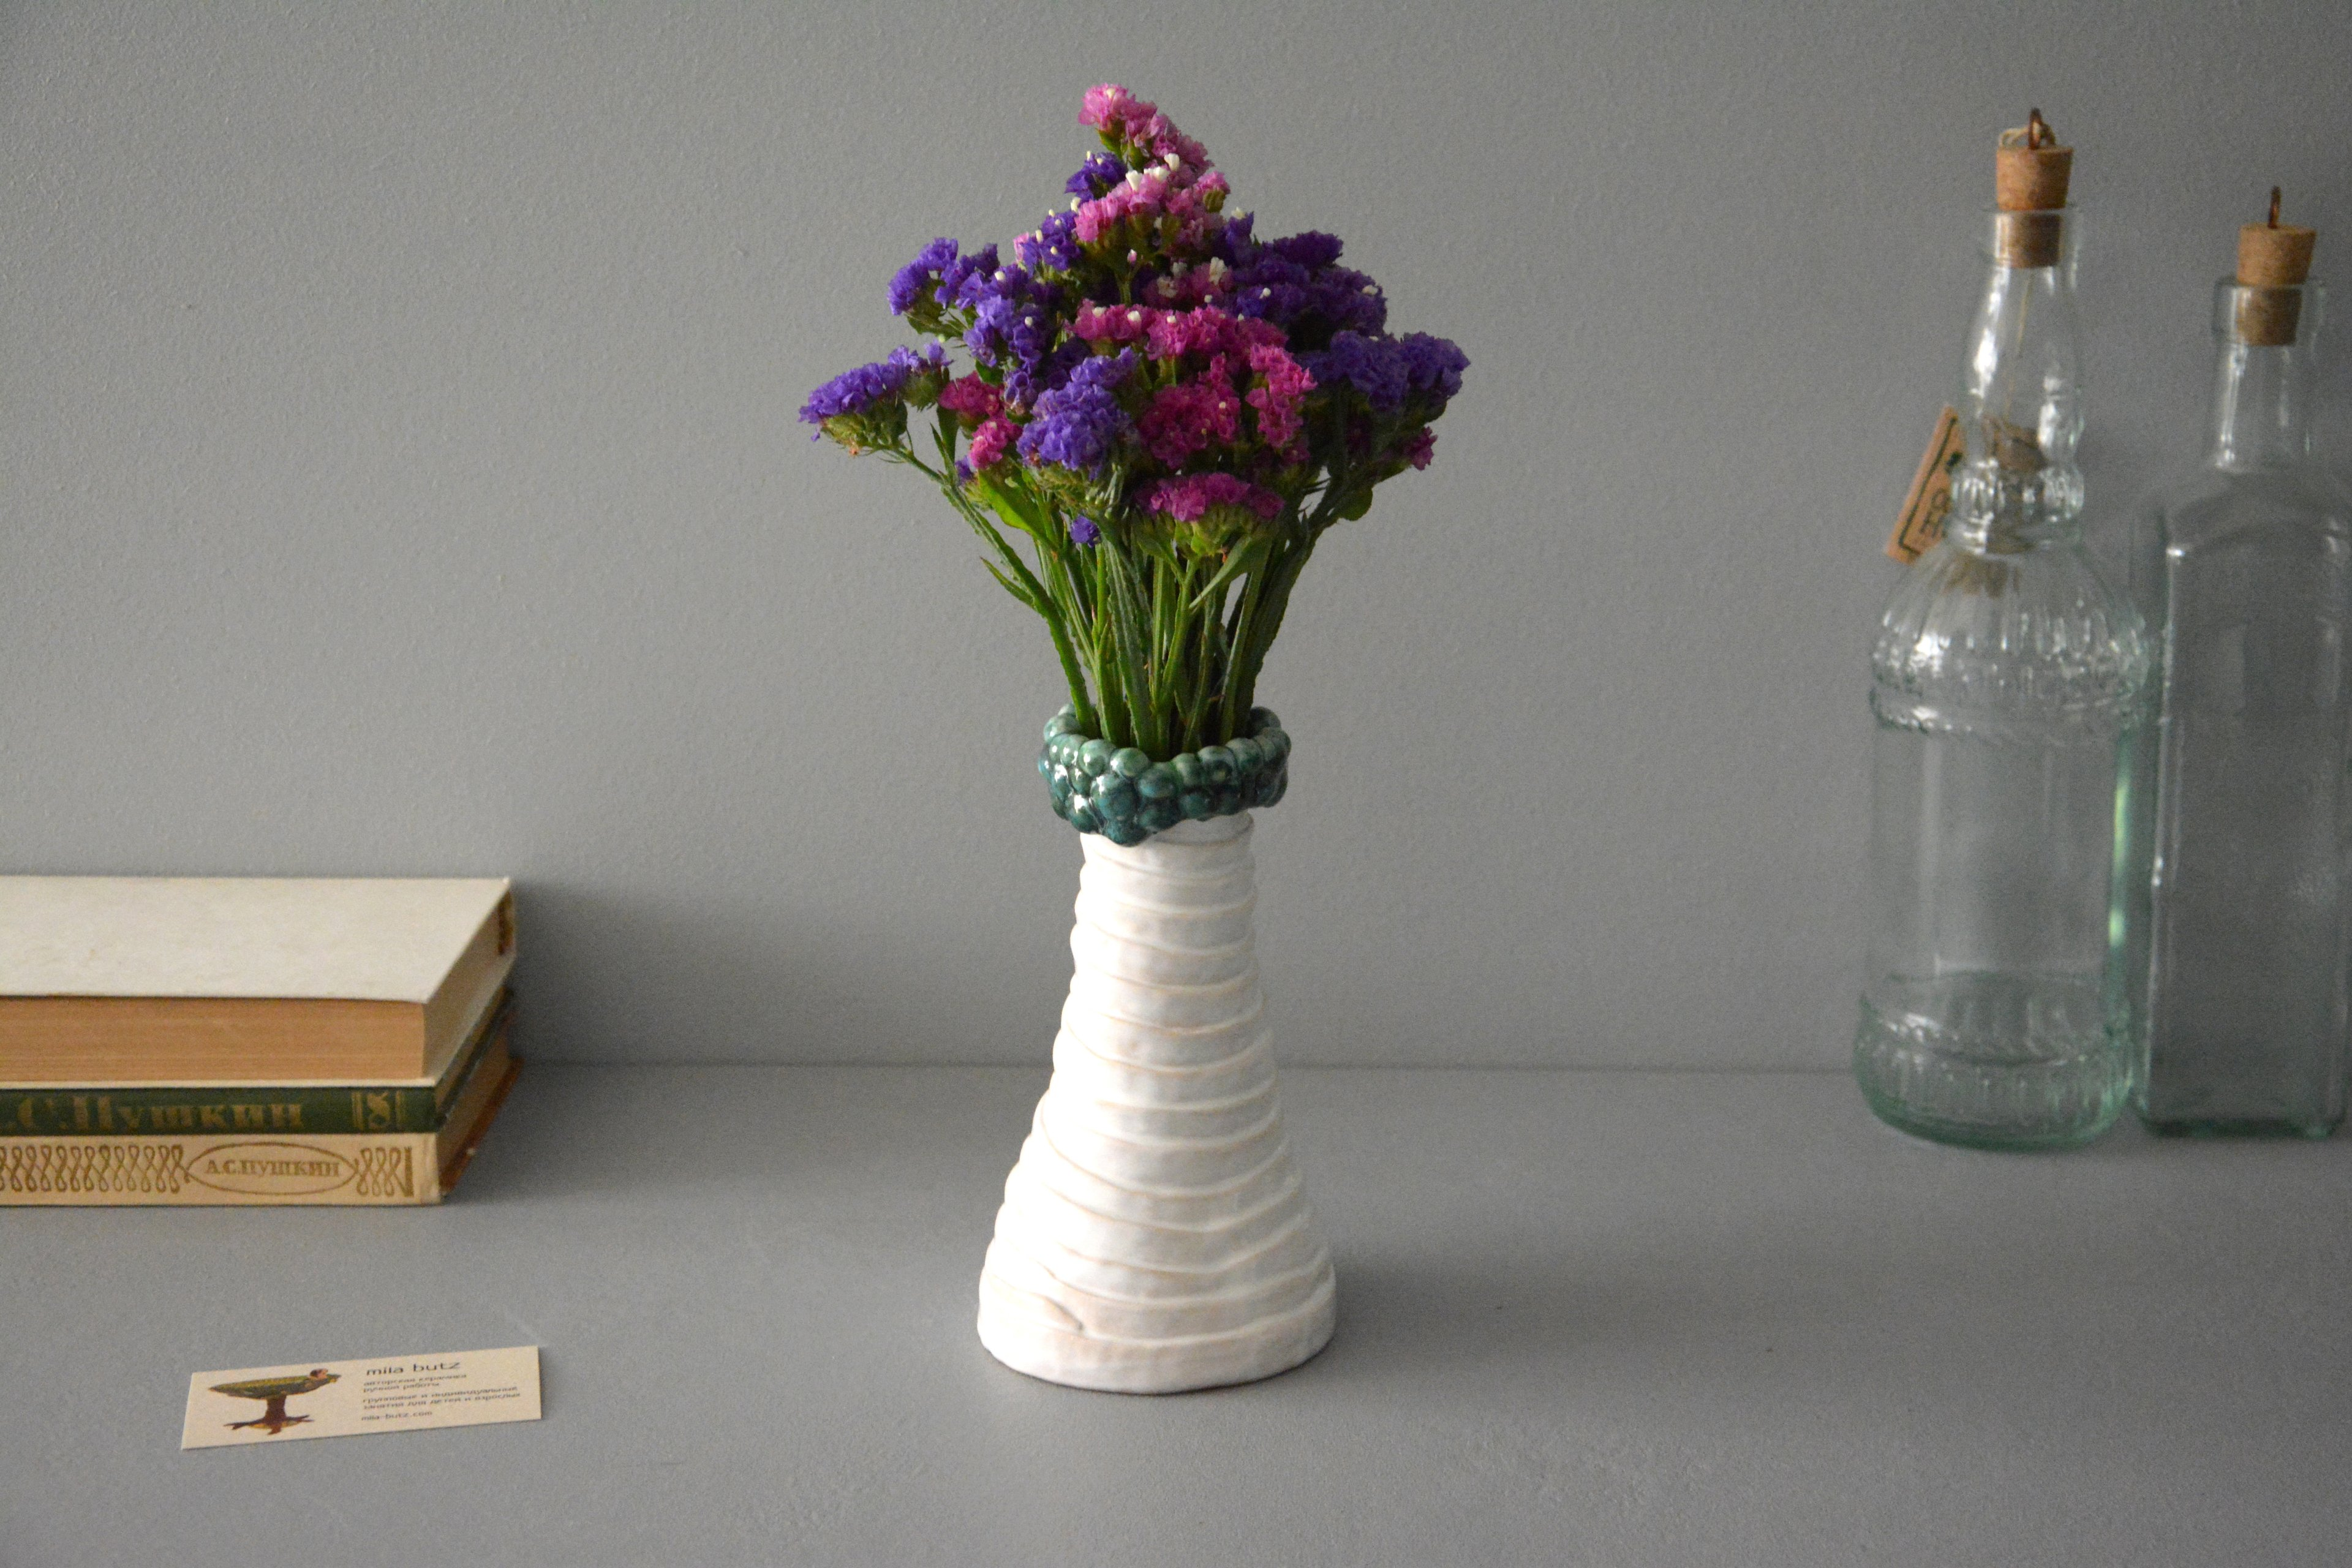 Decorative vase Bundles and balls, height - 17,5 cm, photo 4 of 6. 1209.